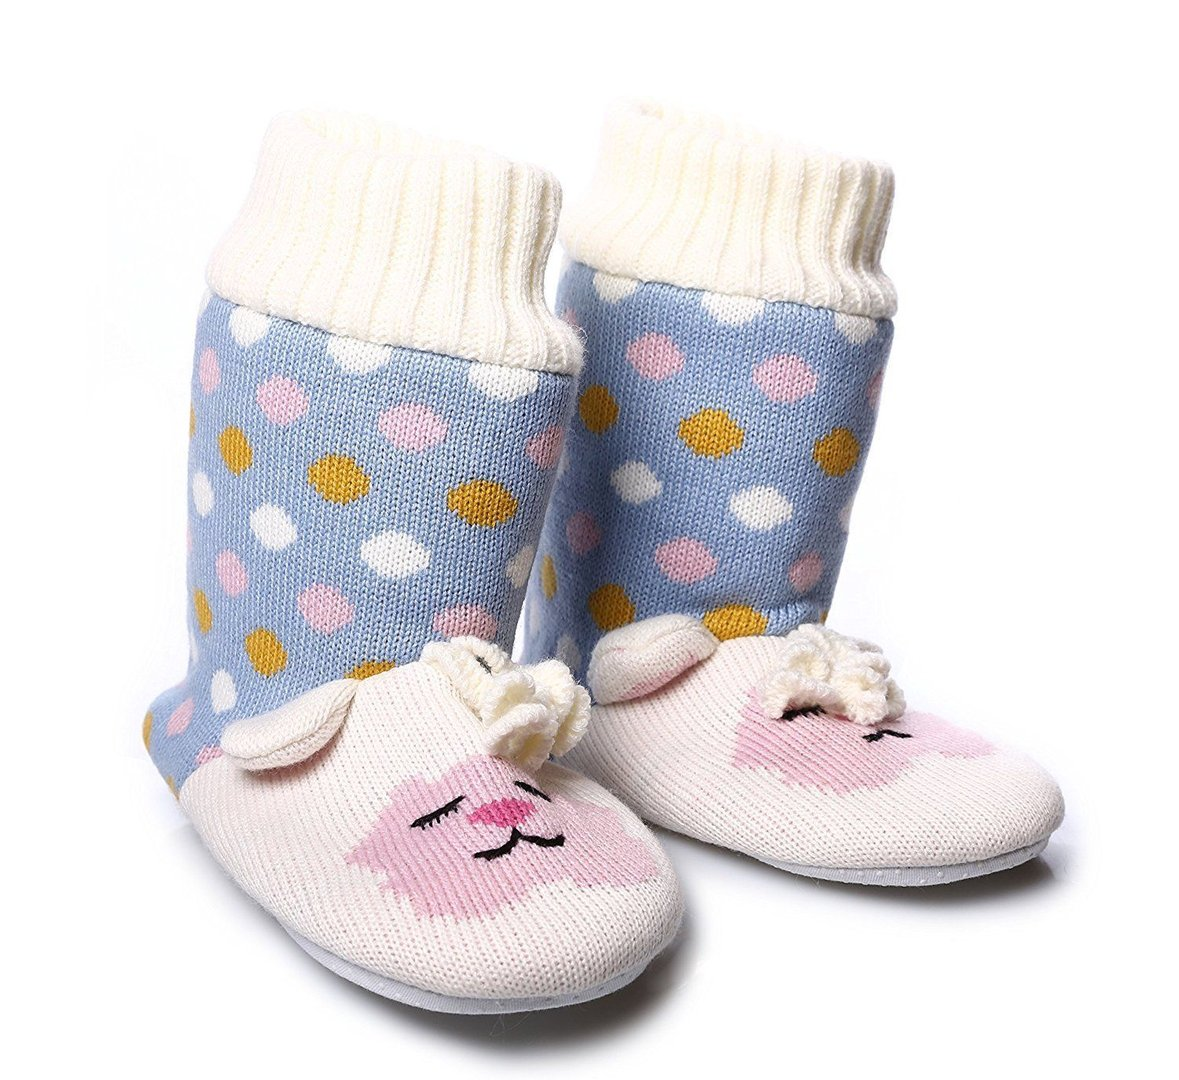 Aroma Home Fun for Feet LAMB SLIPPERS RRP £19.99 CLEARANCE XL £2.99